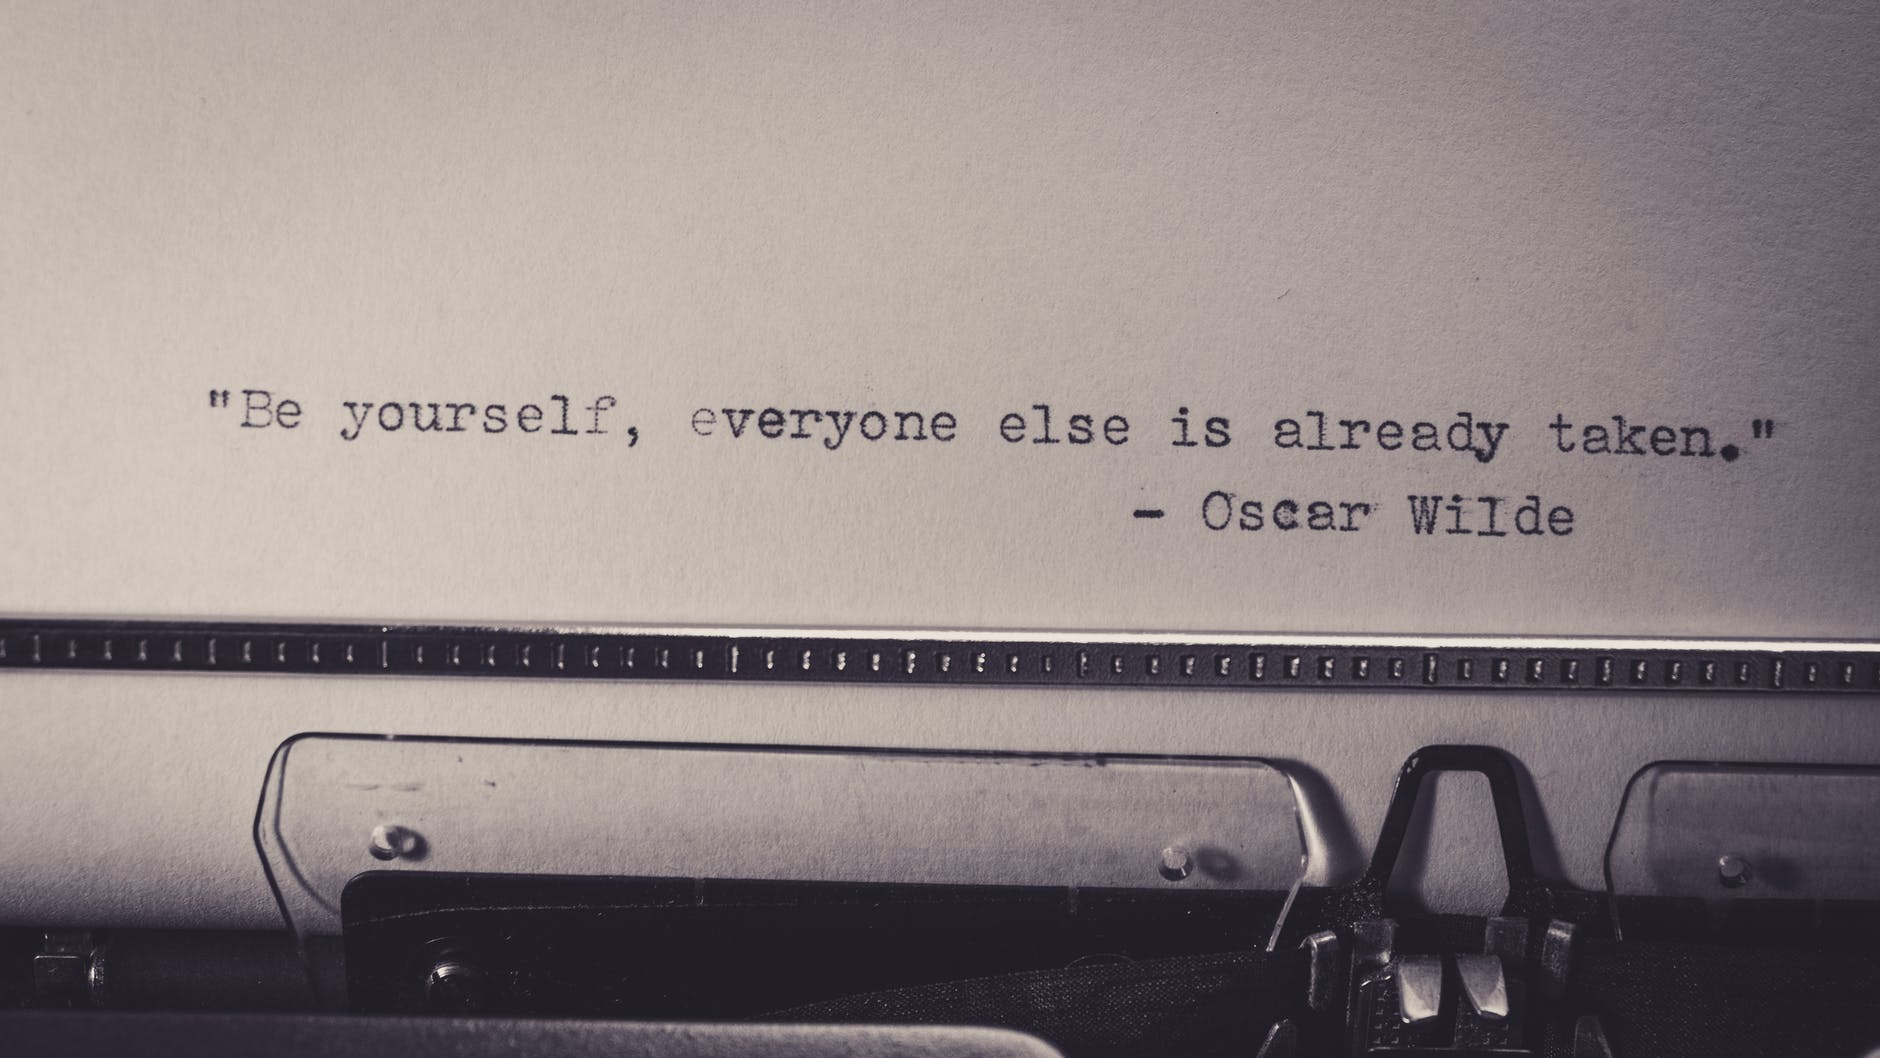 """Black and white image of a piece of paper in a typewriter. The paper says, """"be yourself, everyone else is already taken,"""" a quote by Oscar Wilde."""